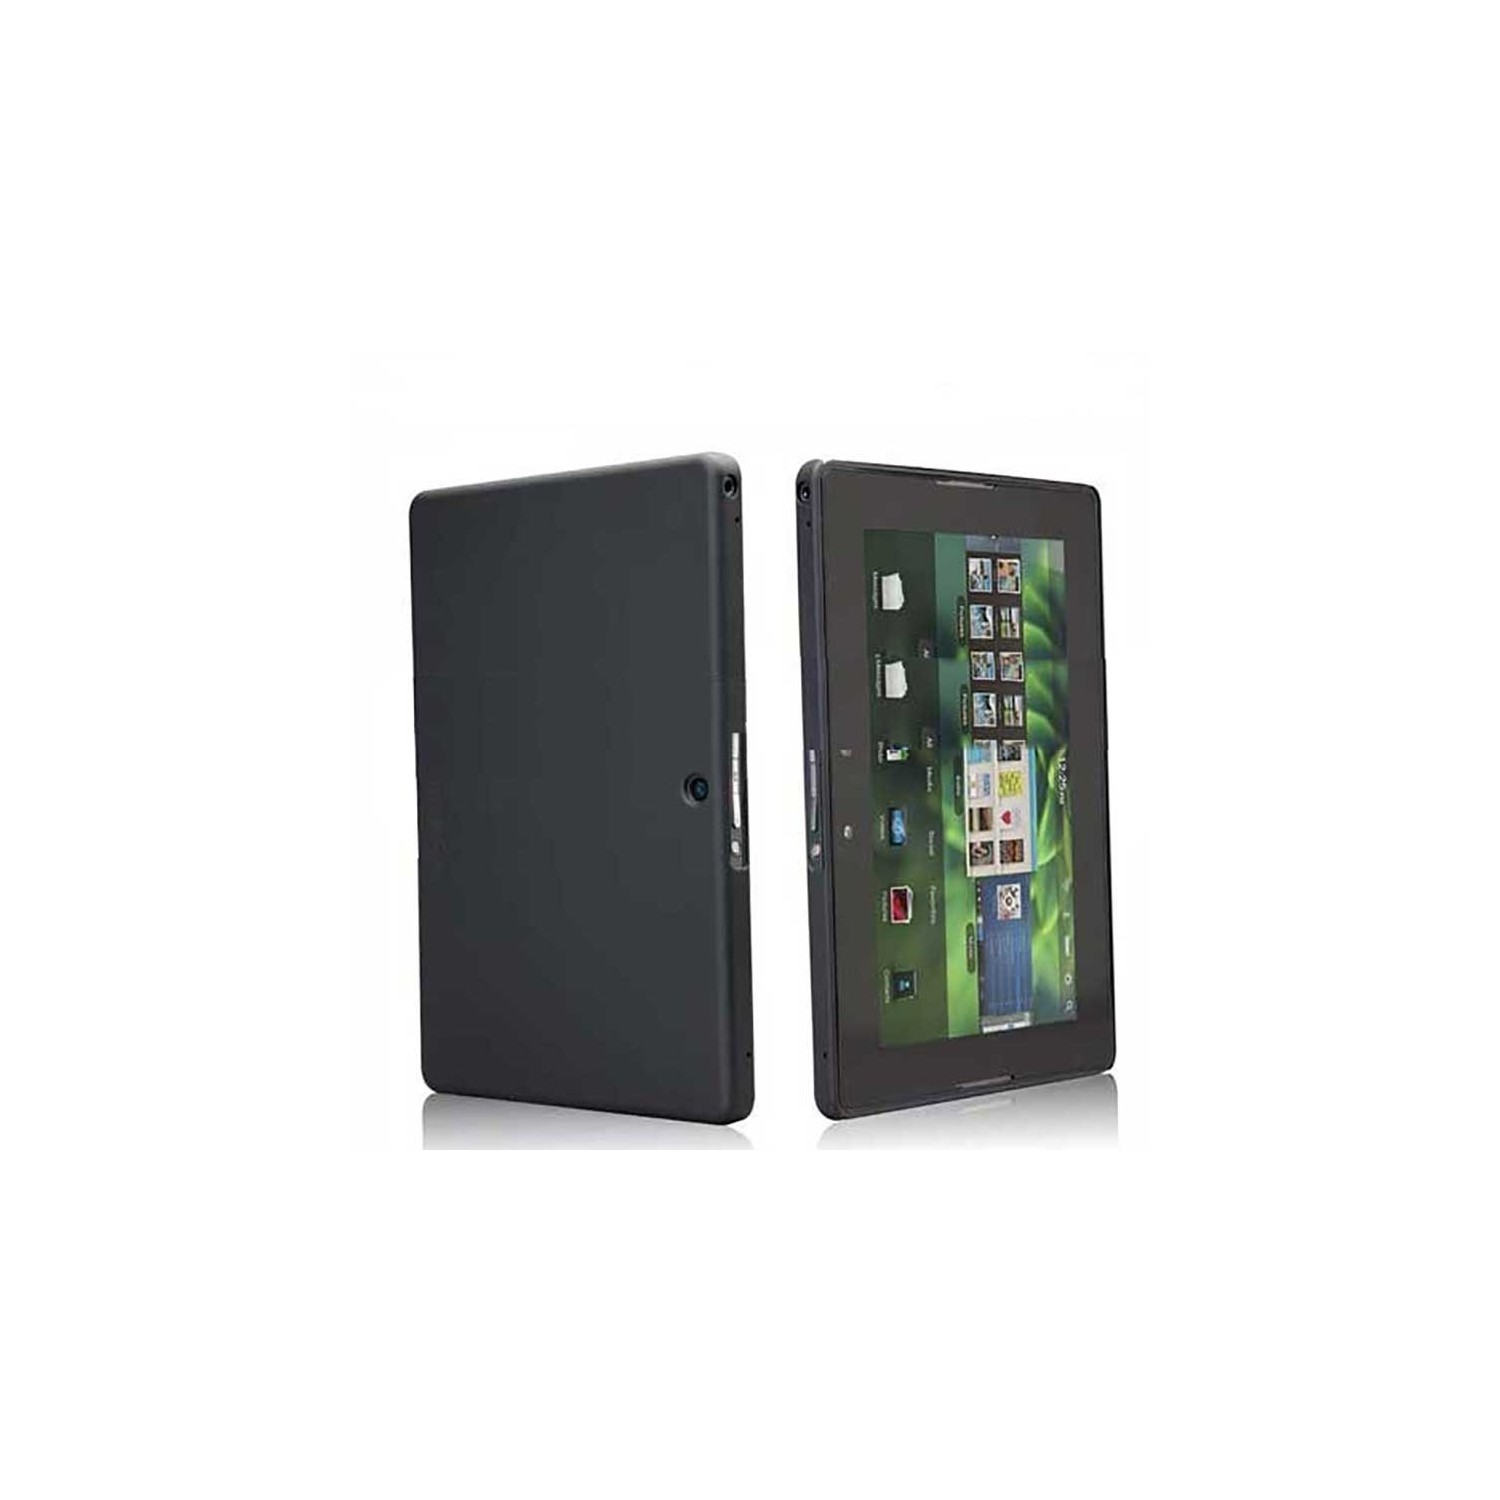 Case Mate Barely There case for Blackberry Playbook